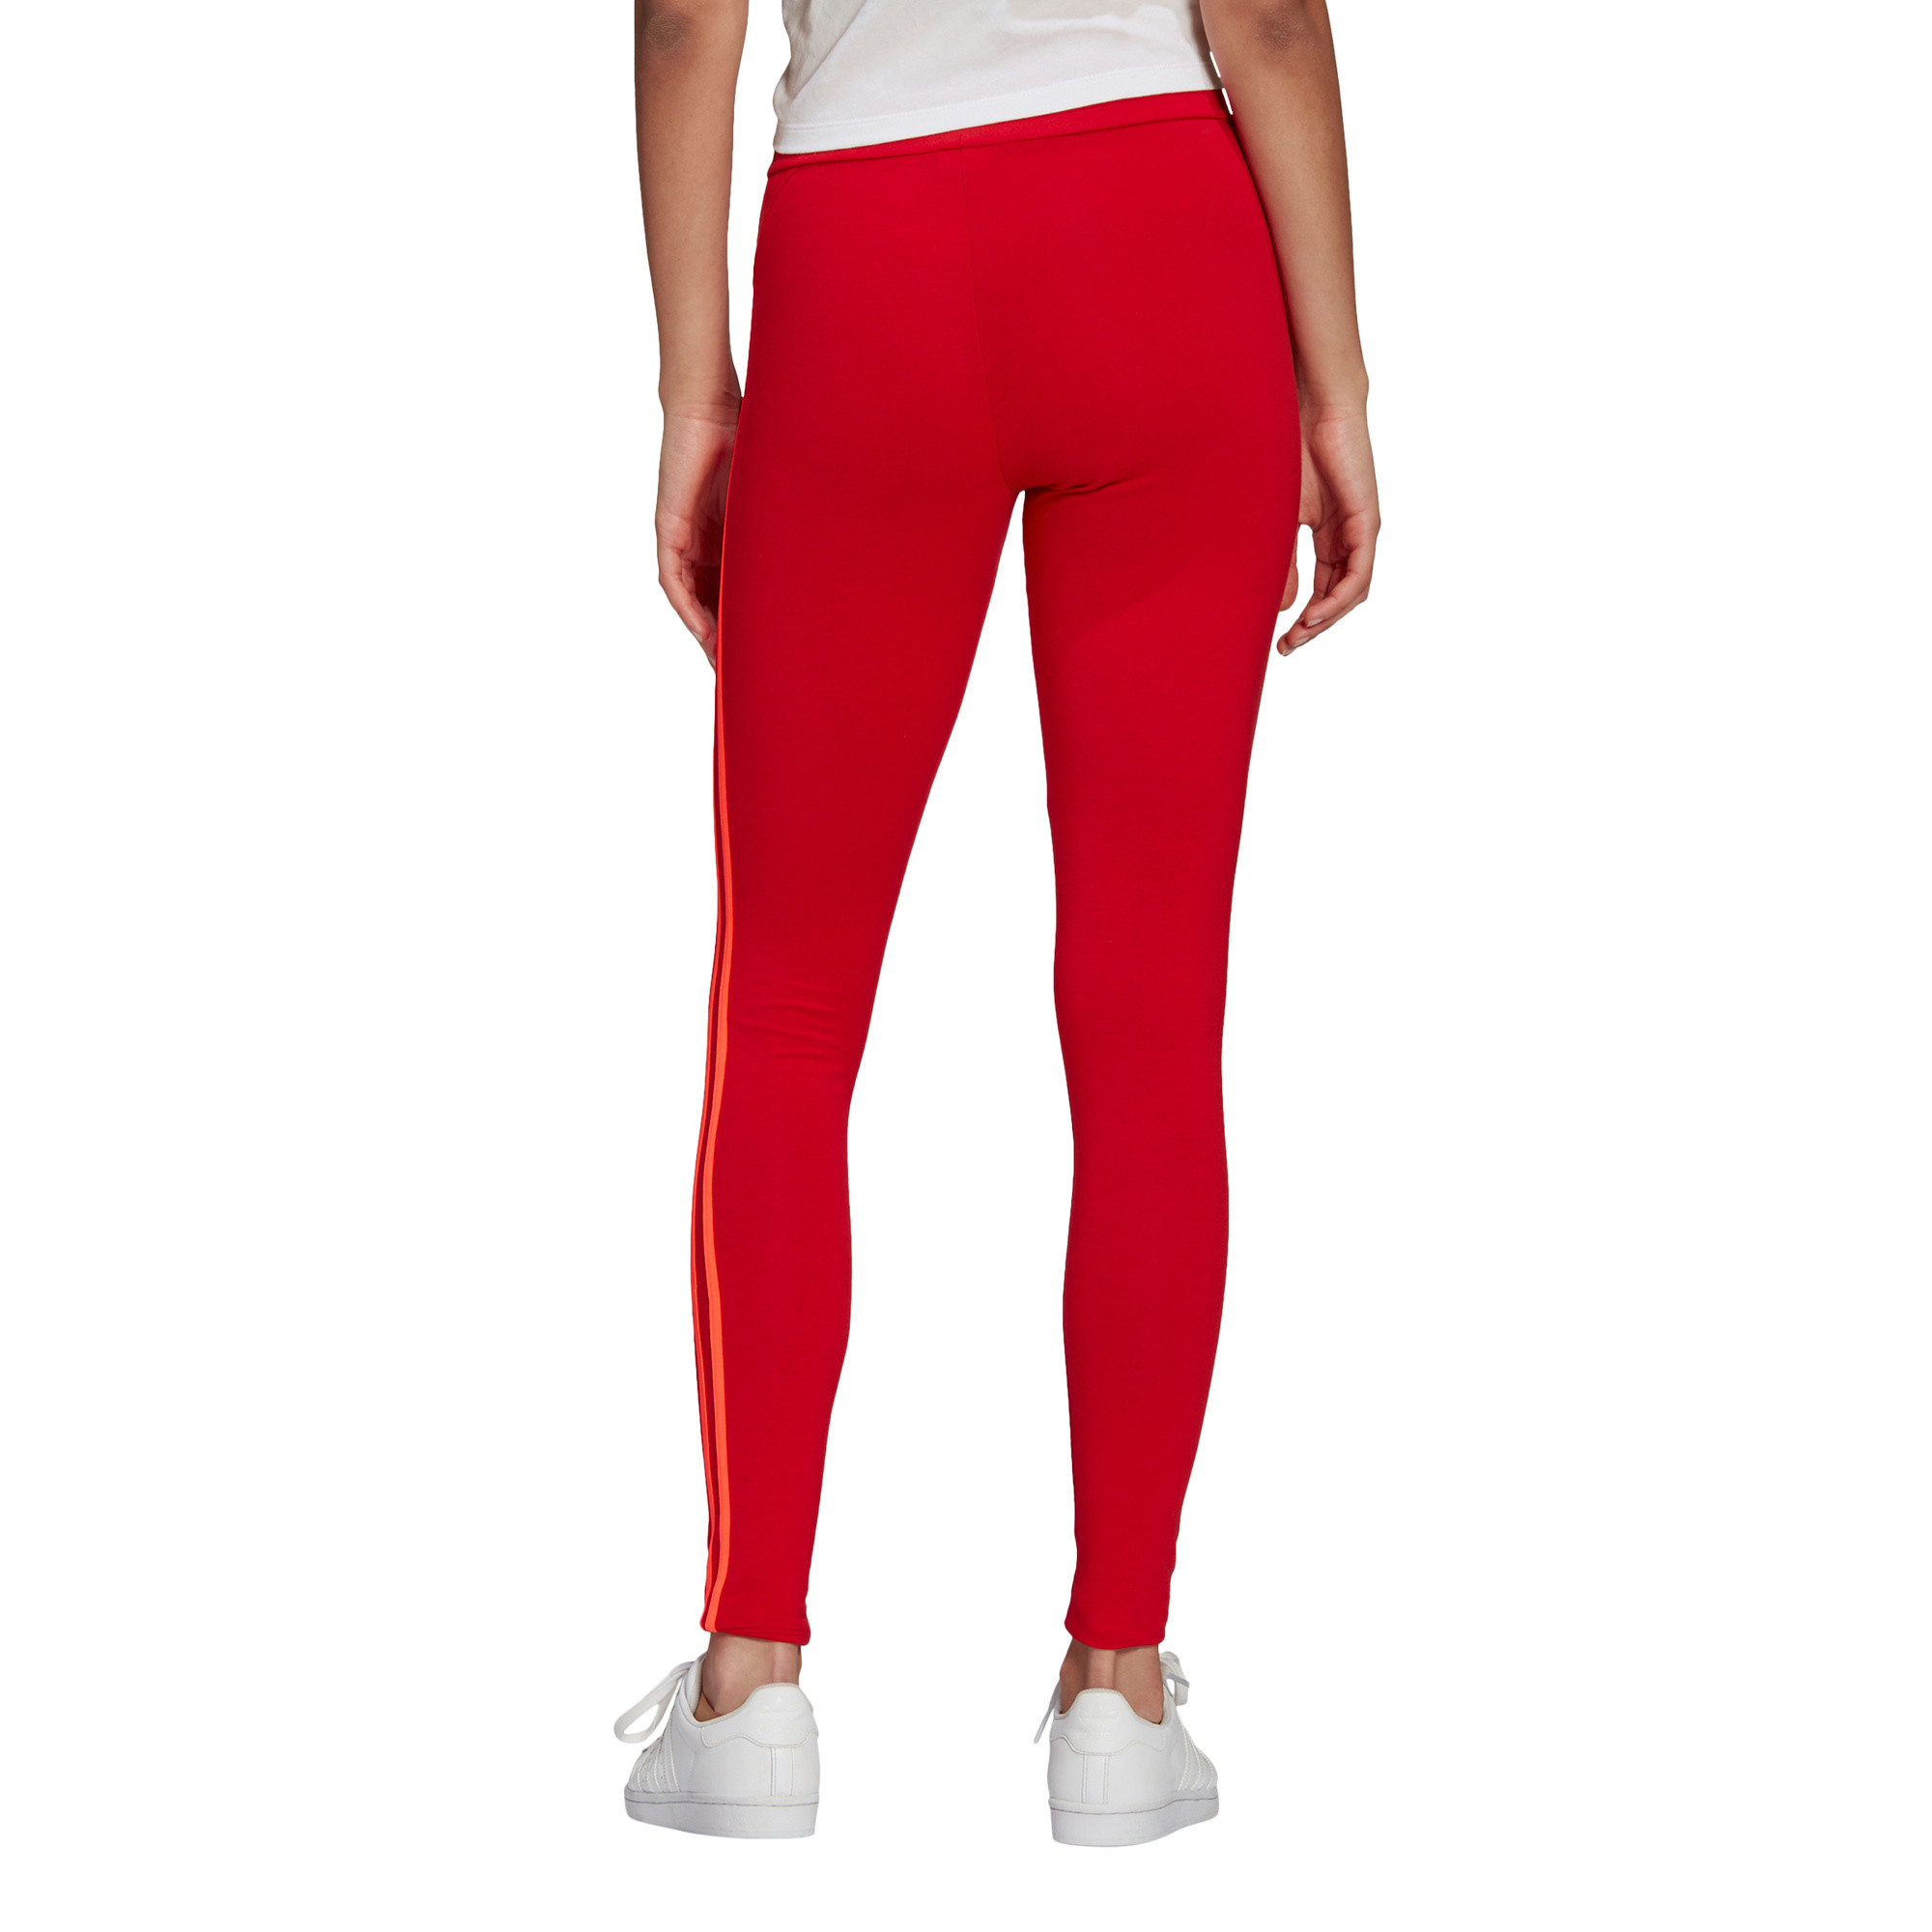 Tight adicolor Sliced Trefoil High-Waisted, Rosso, large image number 1